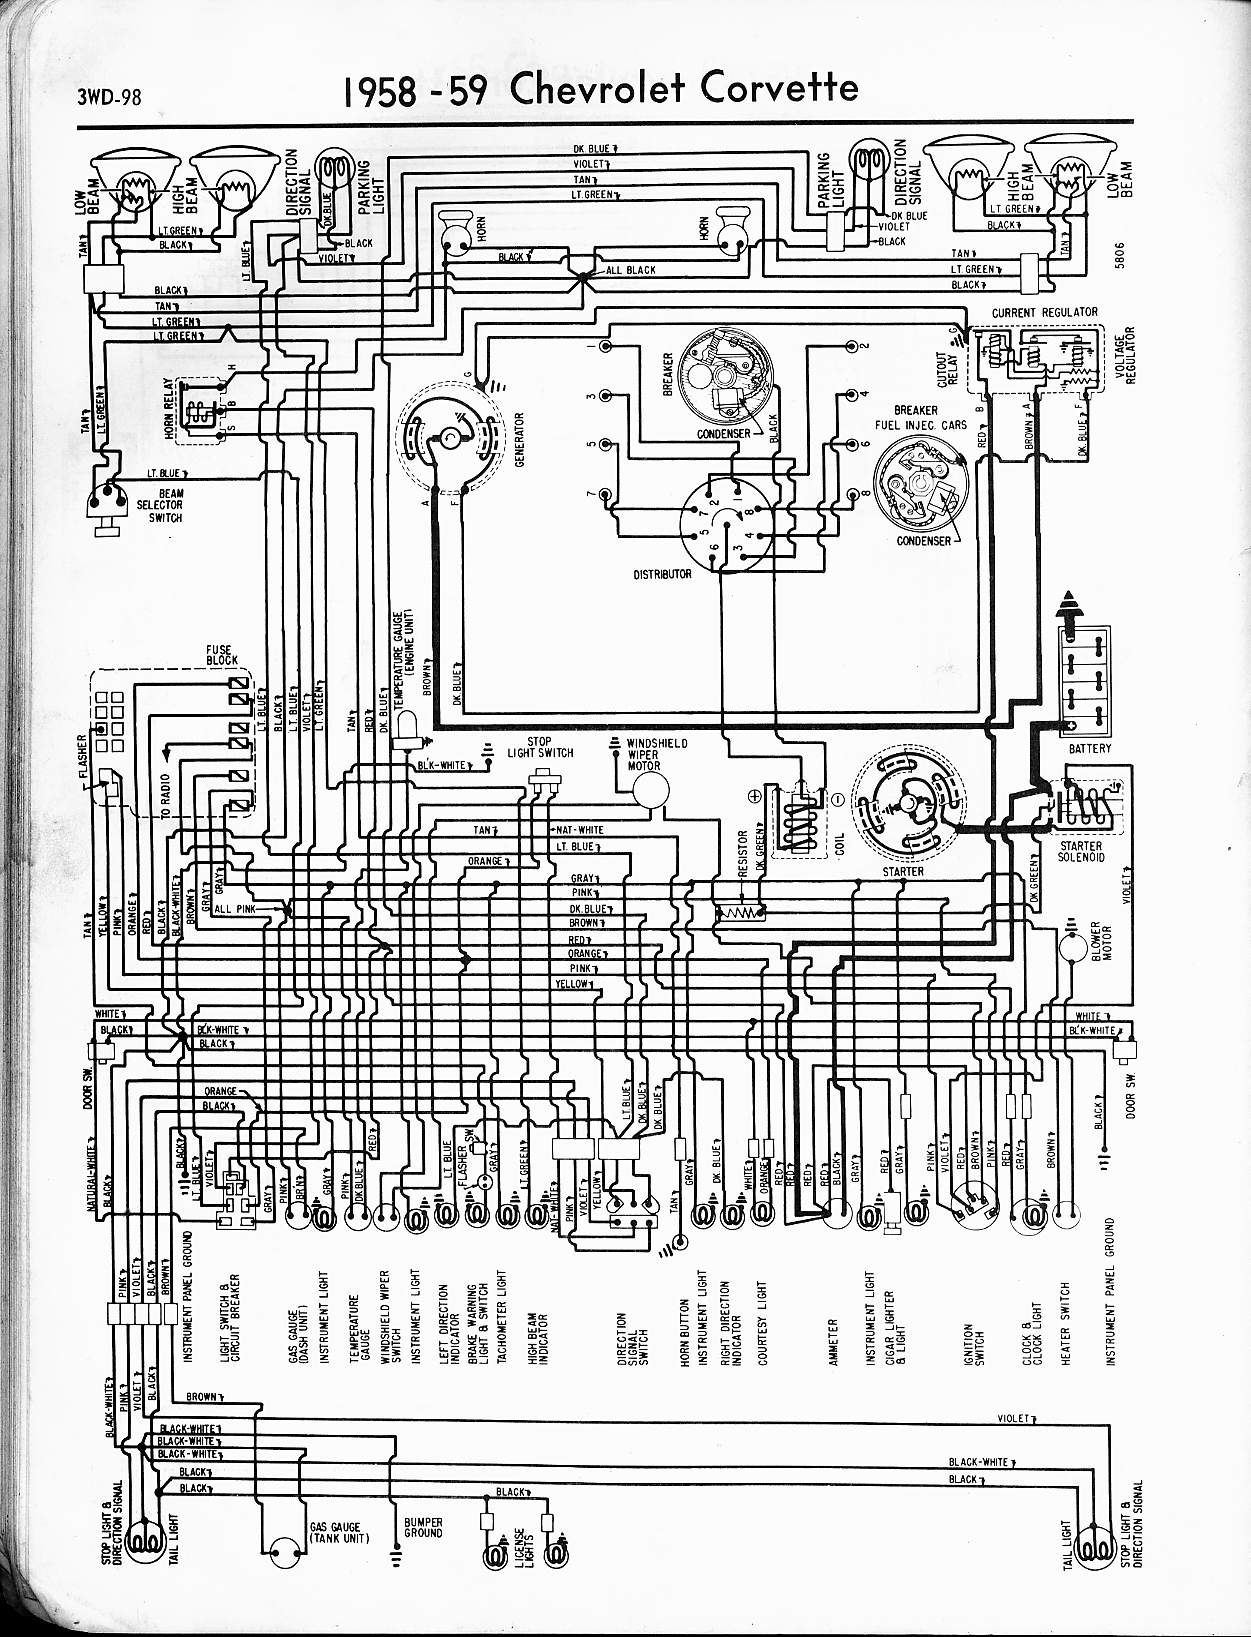 1959 Chevrolet Wiring Diagram Schematics 1987 El Camino Radio Schematic 1958 Corvette Chevy Factory